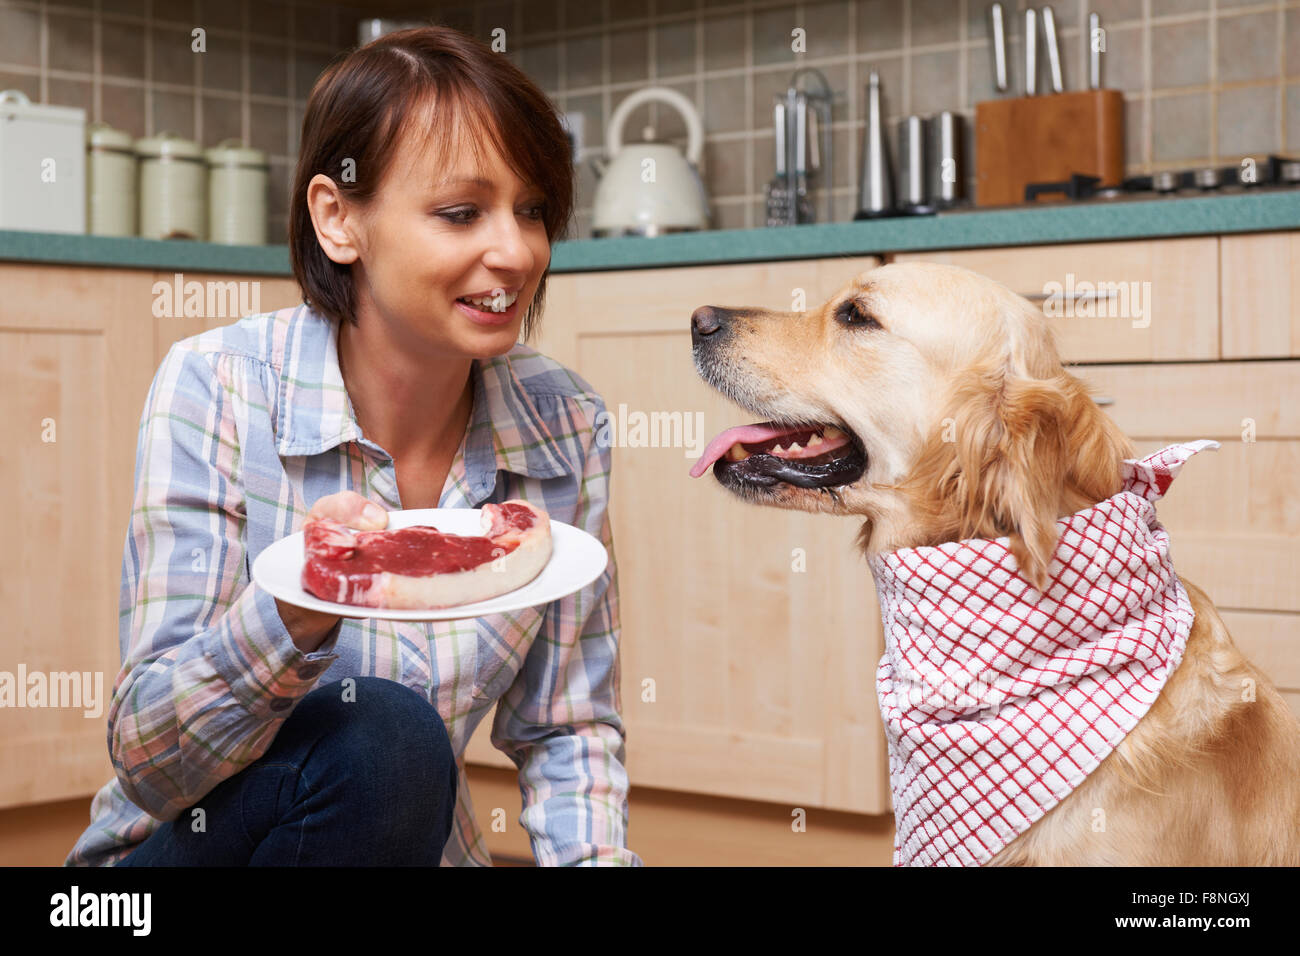 Owner Spoiling Pet Dog With Meal Of Fresh Steak - Stock Image